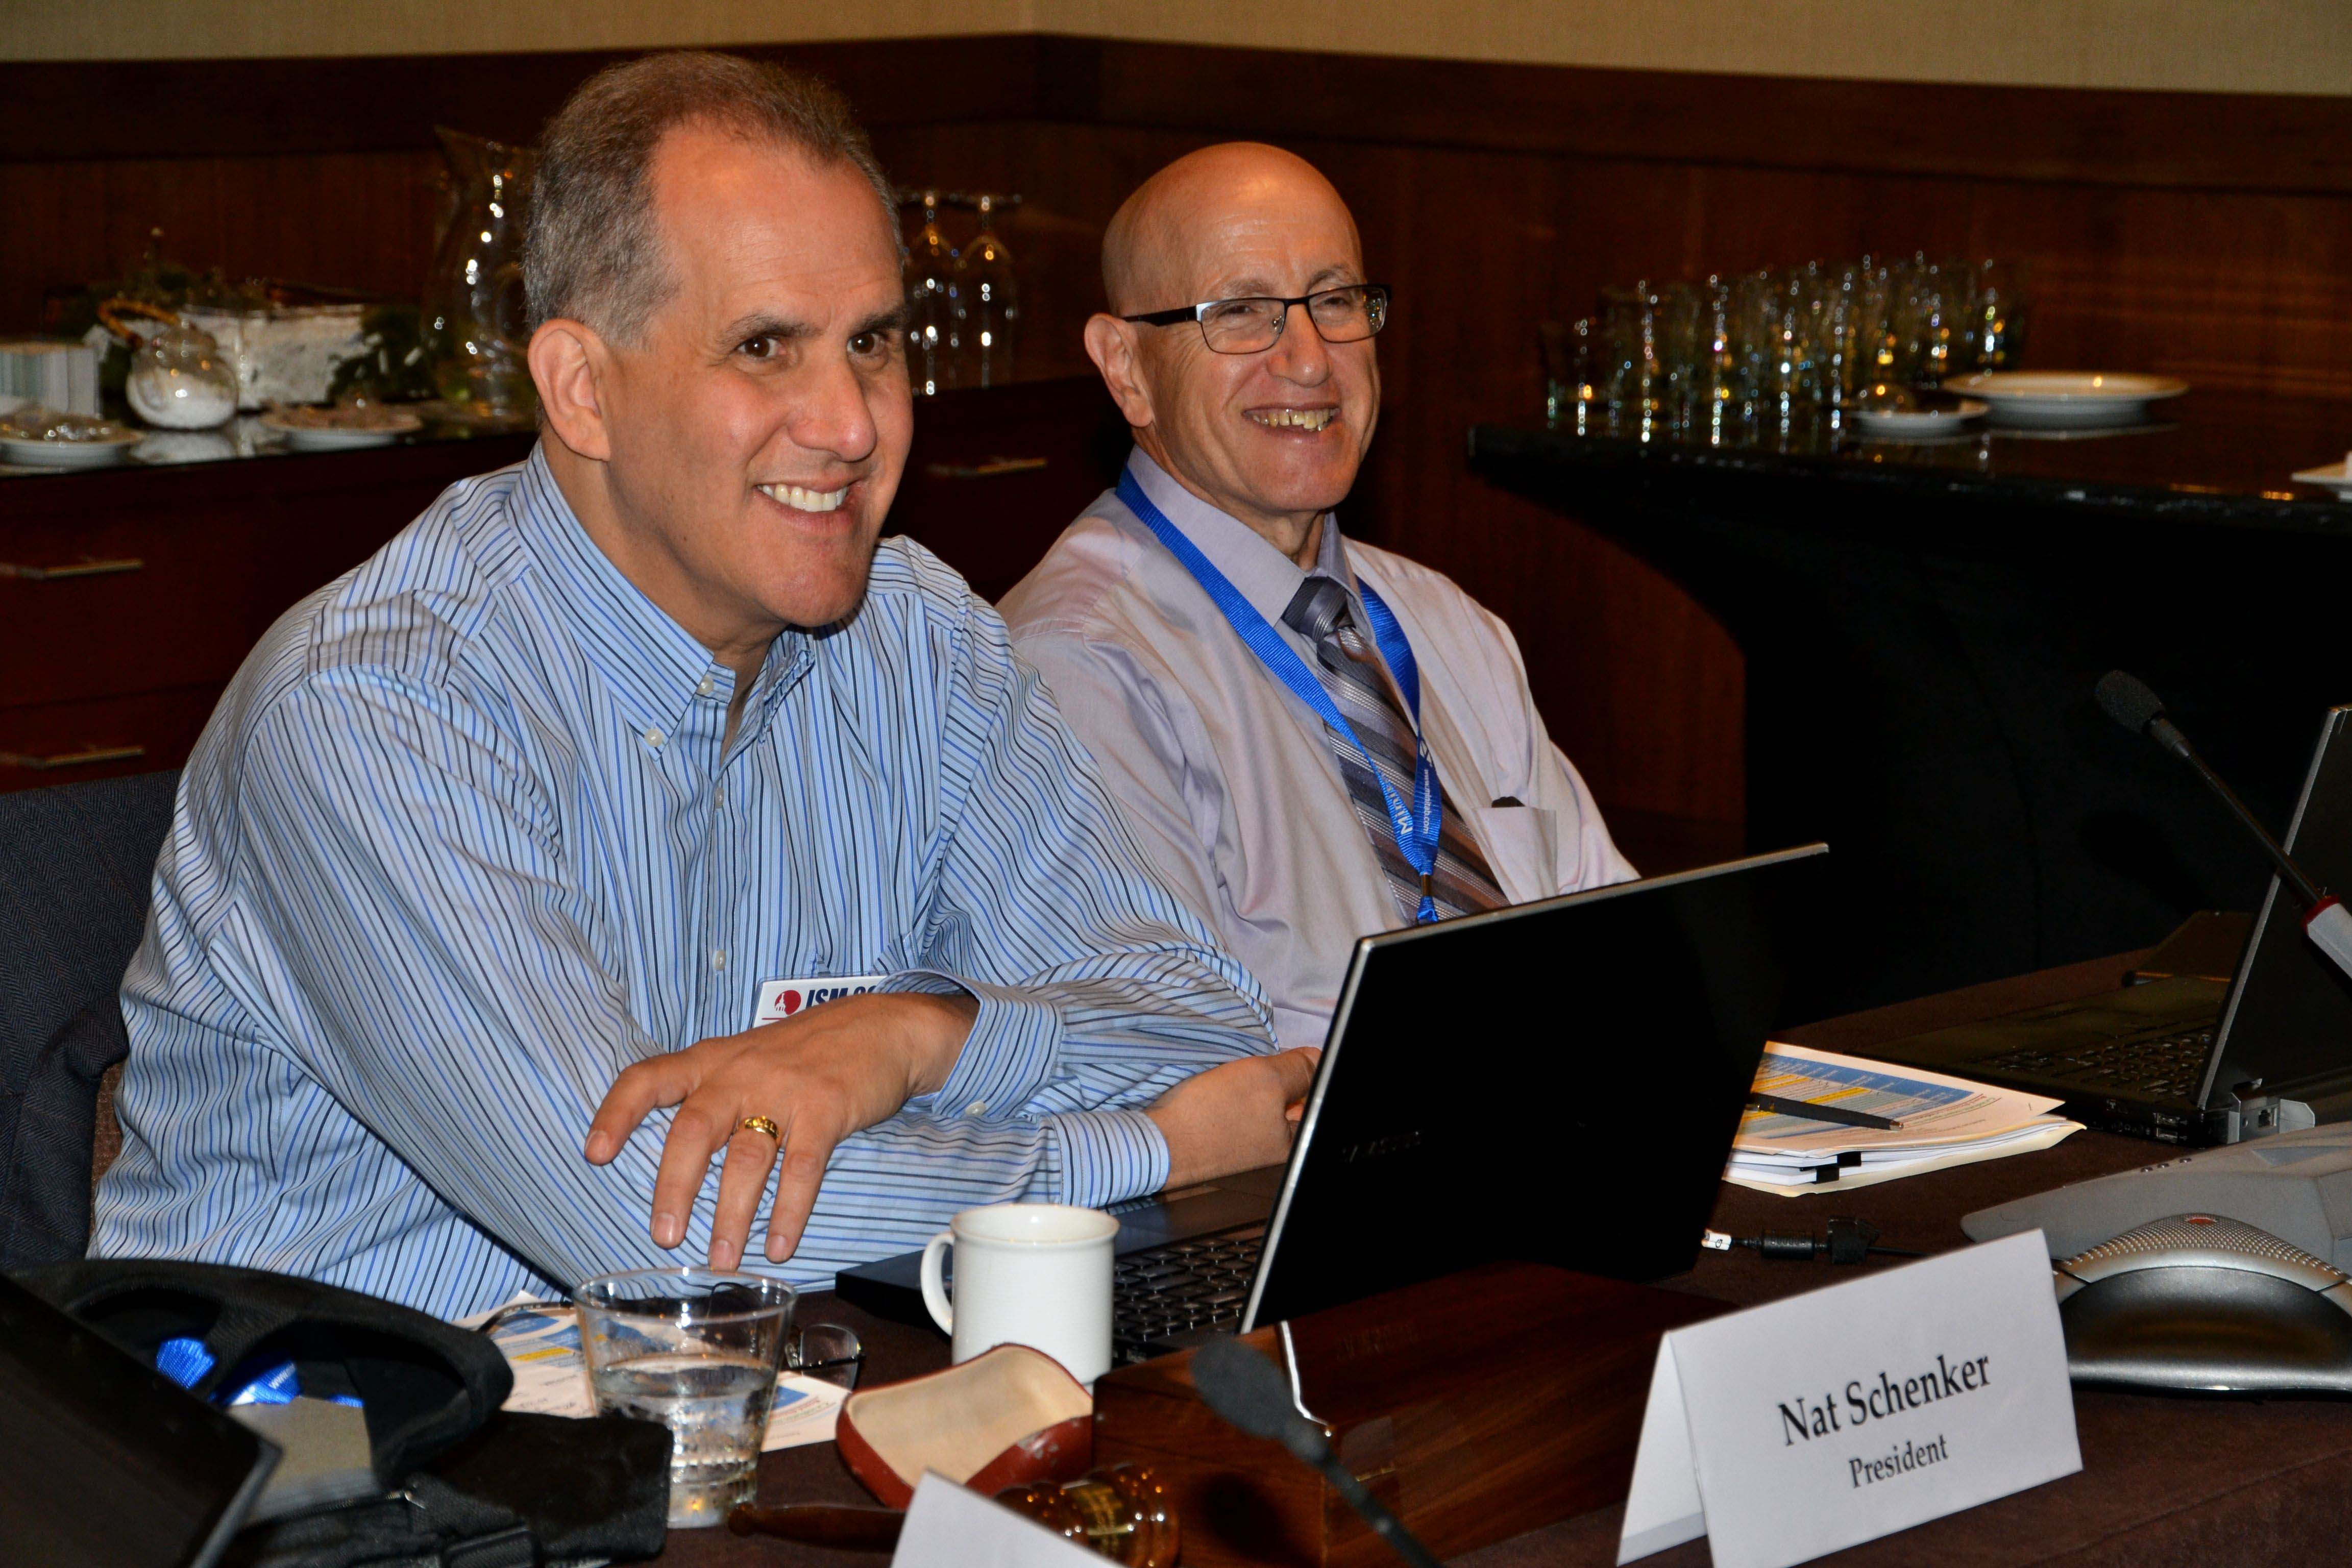 From left: ASA President Nathaniel Schenker and ASA Executive Director Ron Wasserstein enjoy the board meeting